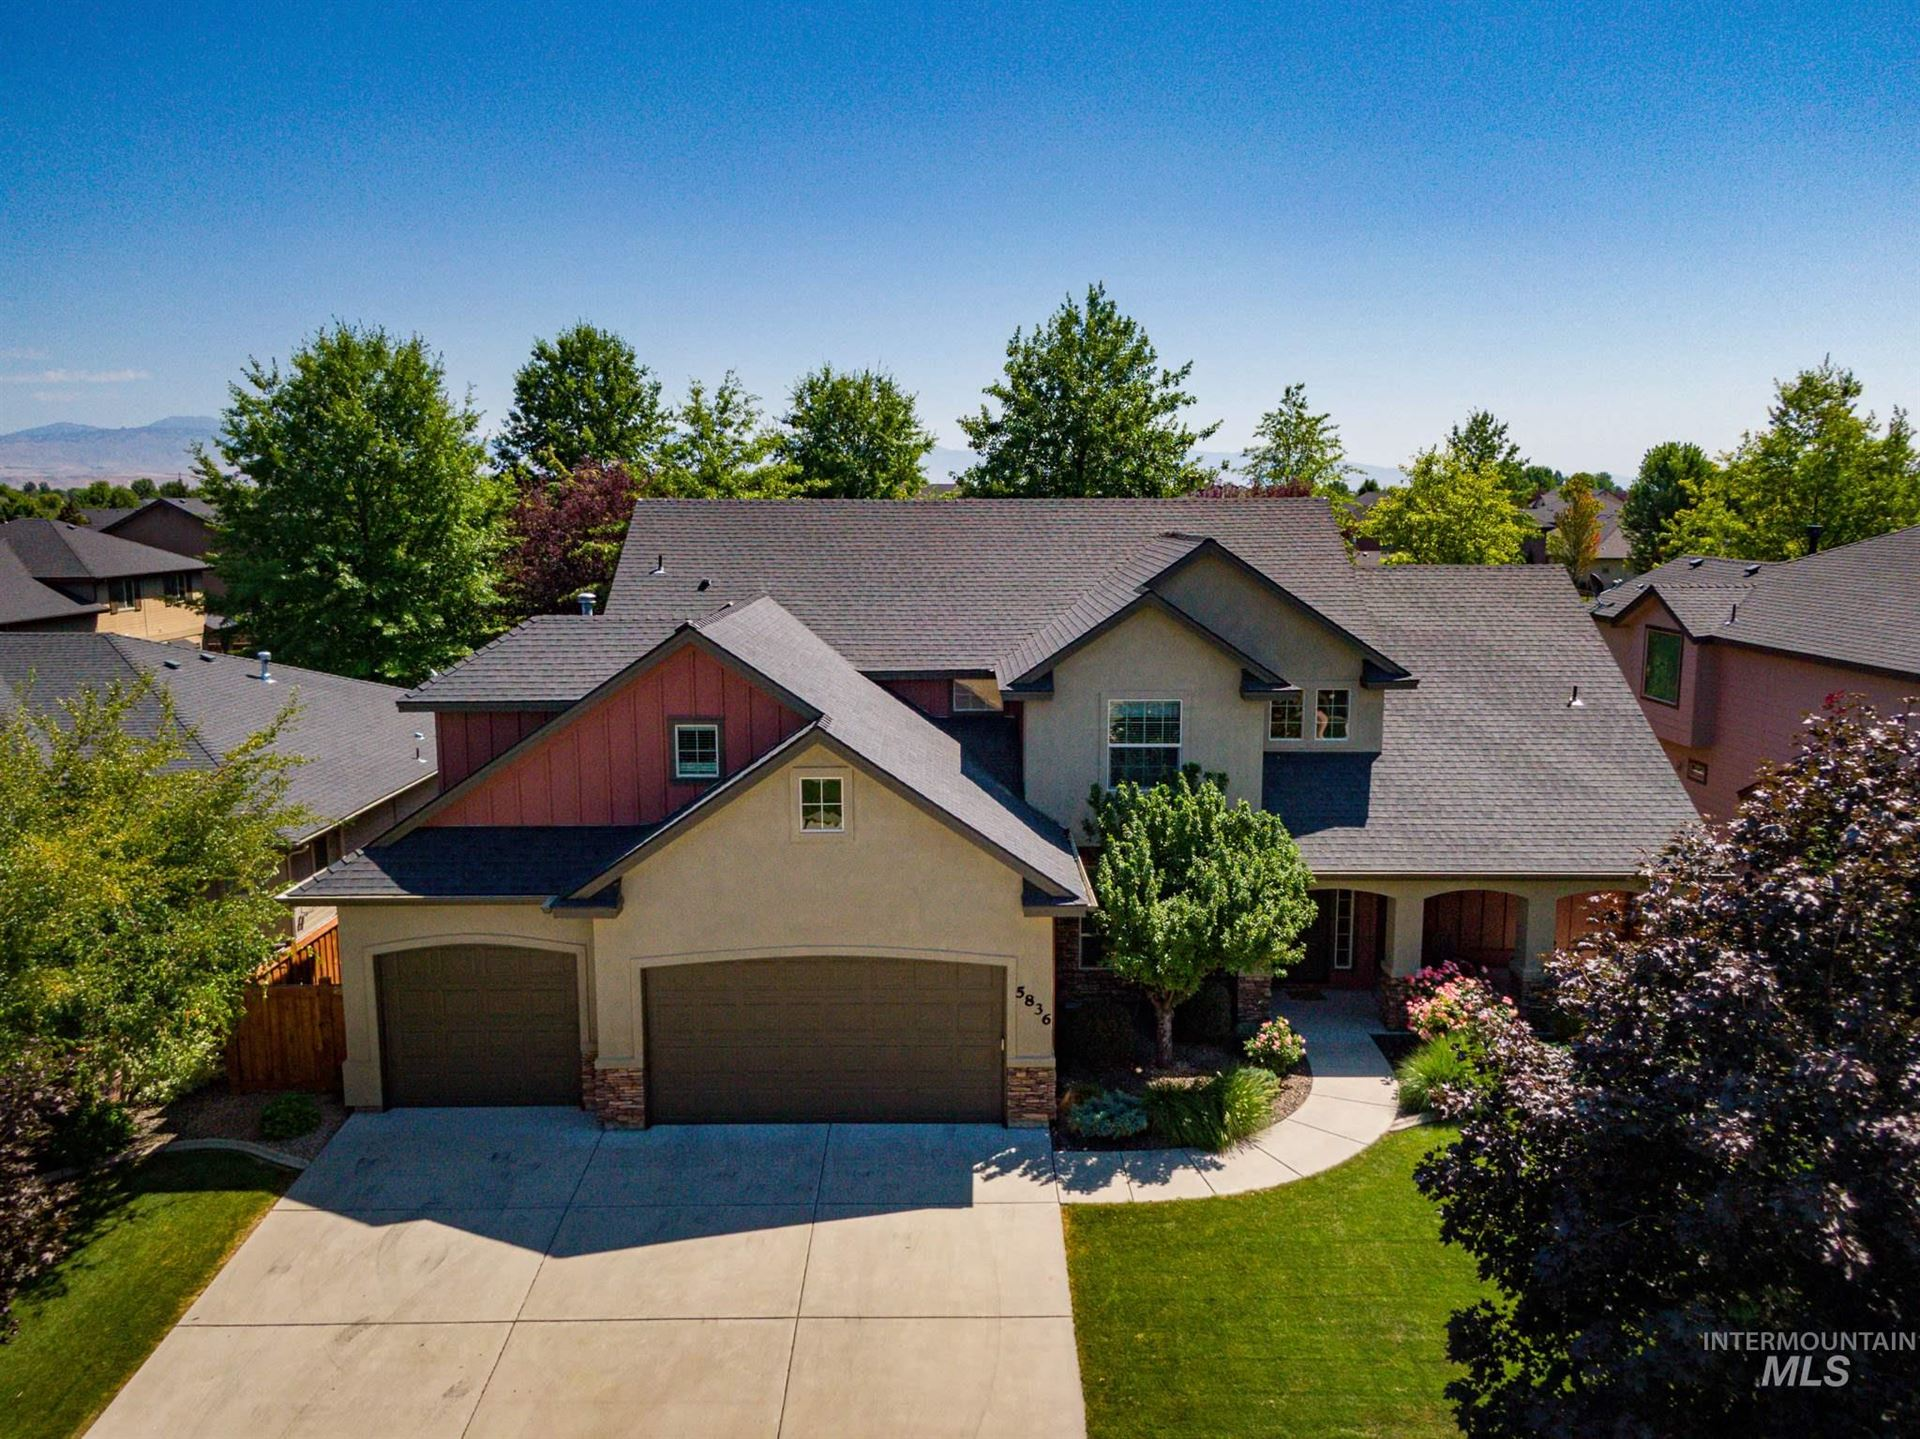 Photo of 5836 N Pinery Canyon, Meridian, ID 83646 (MLS # 98776446)